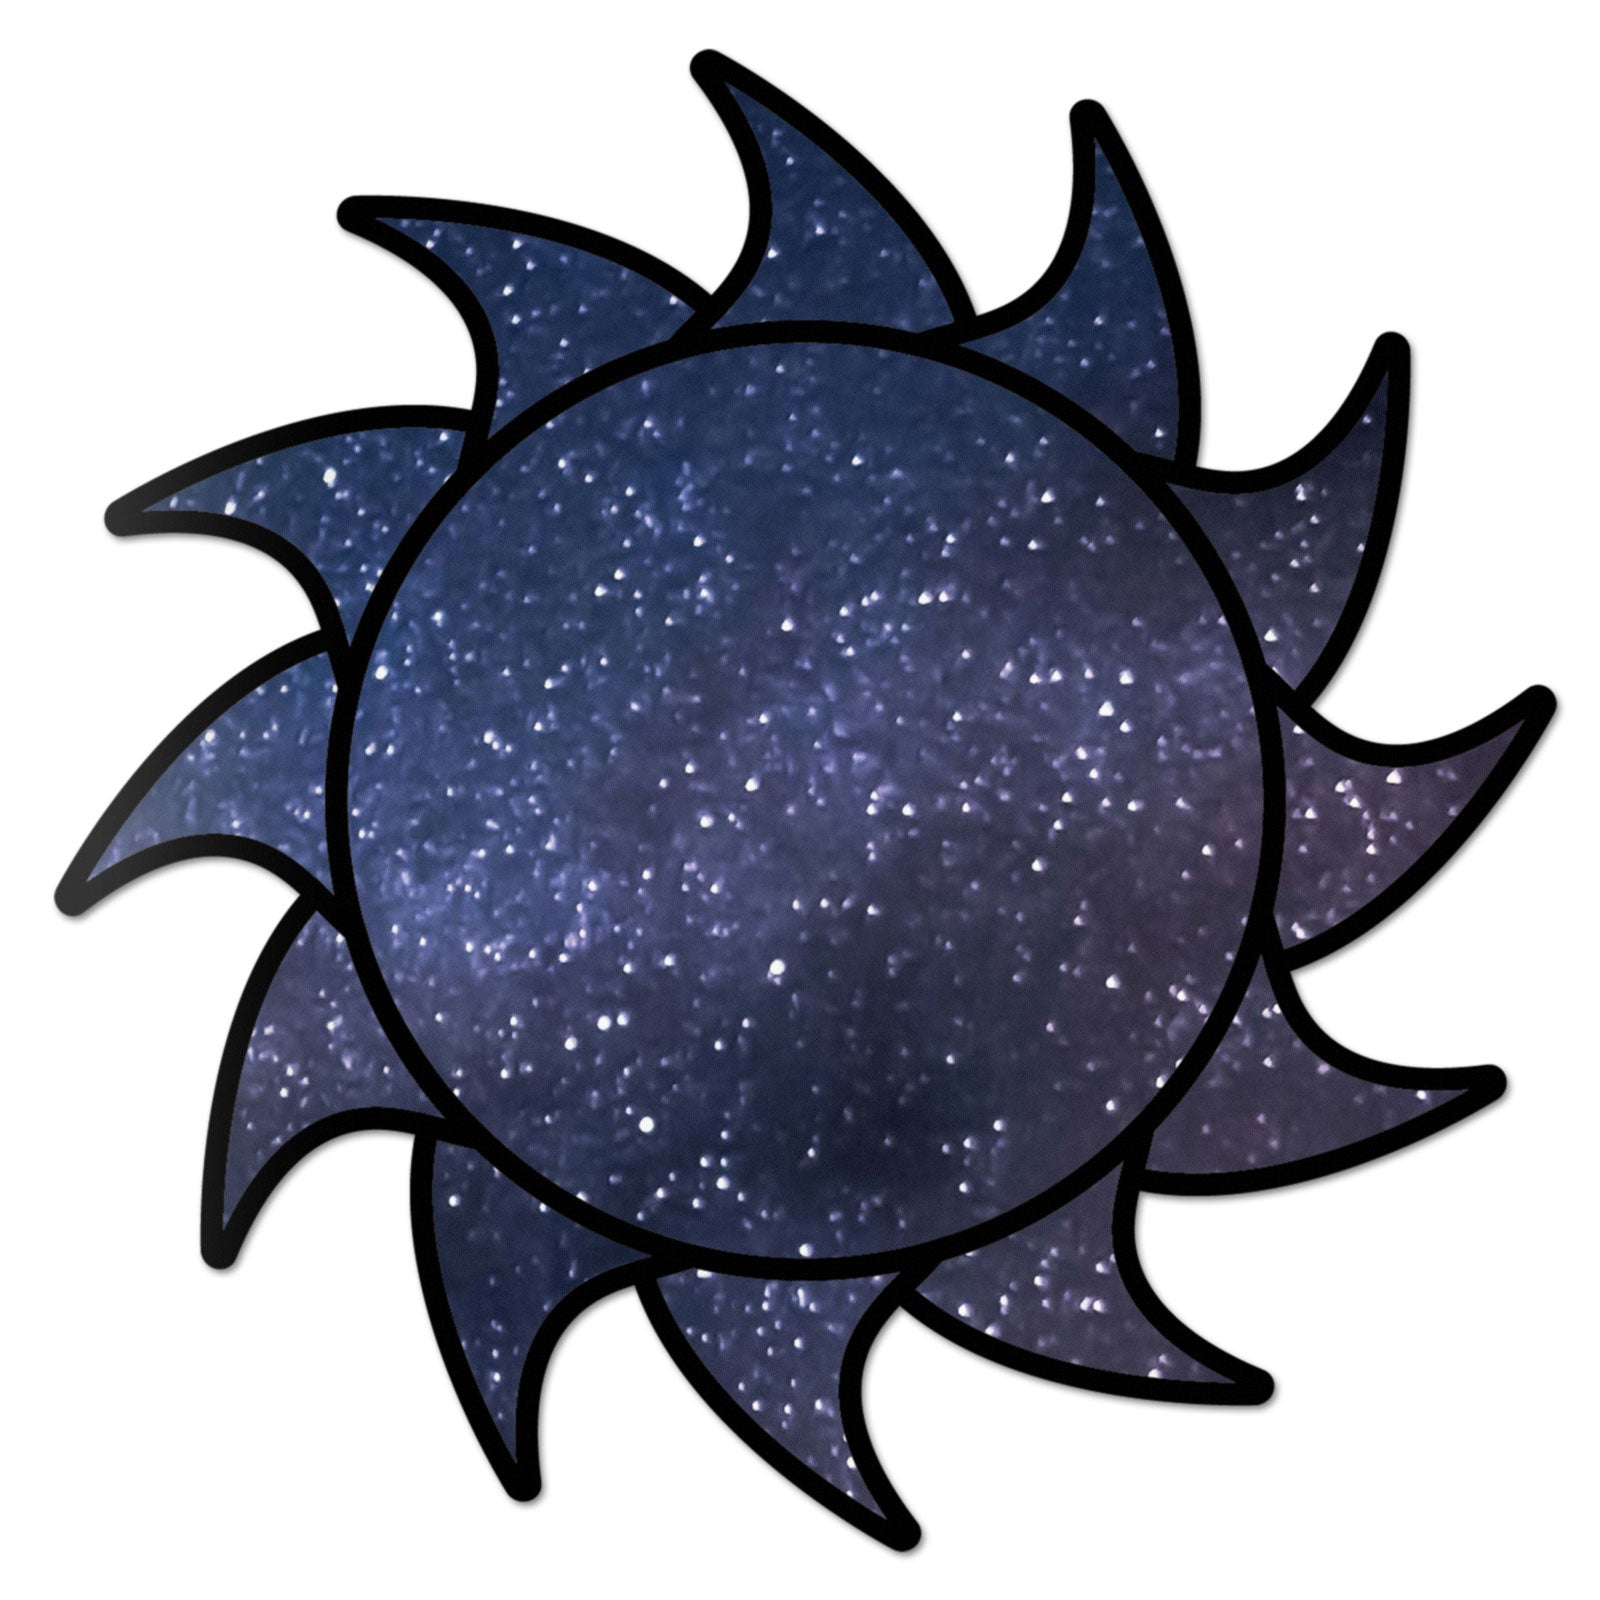 Sun Decal Space Sticker Vinyl Rear Window Car Truck Laptop Sun Solar Wall Water and Fade Resistant 4 Inches